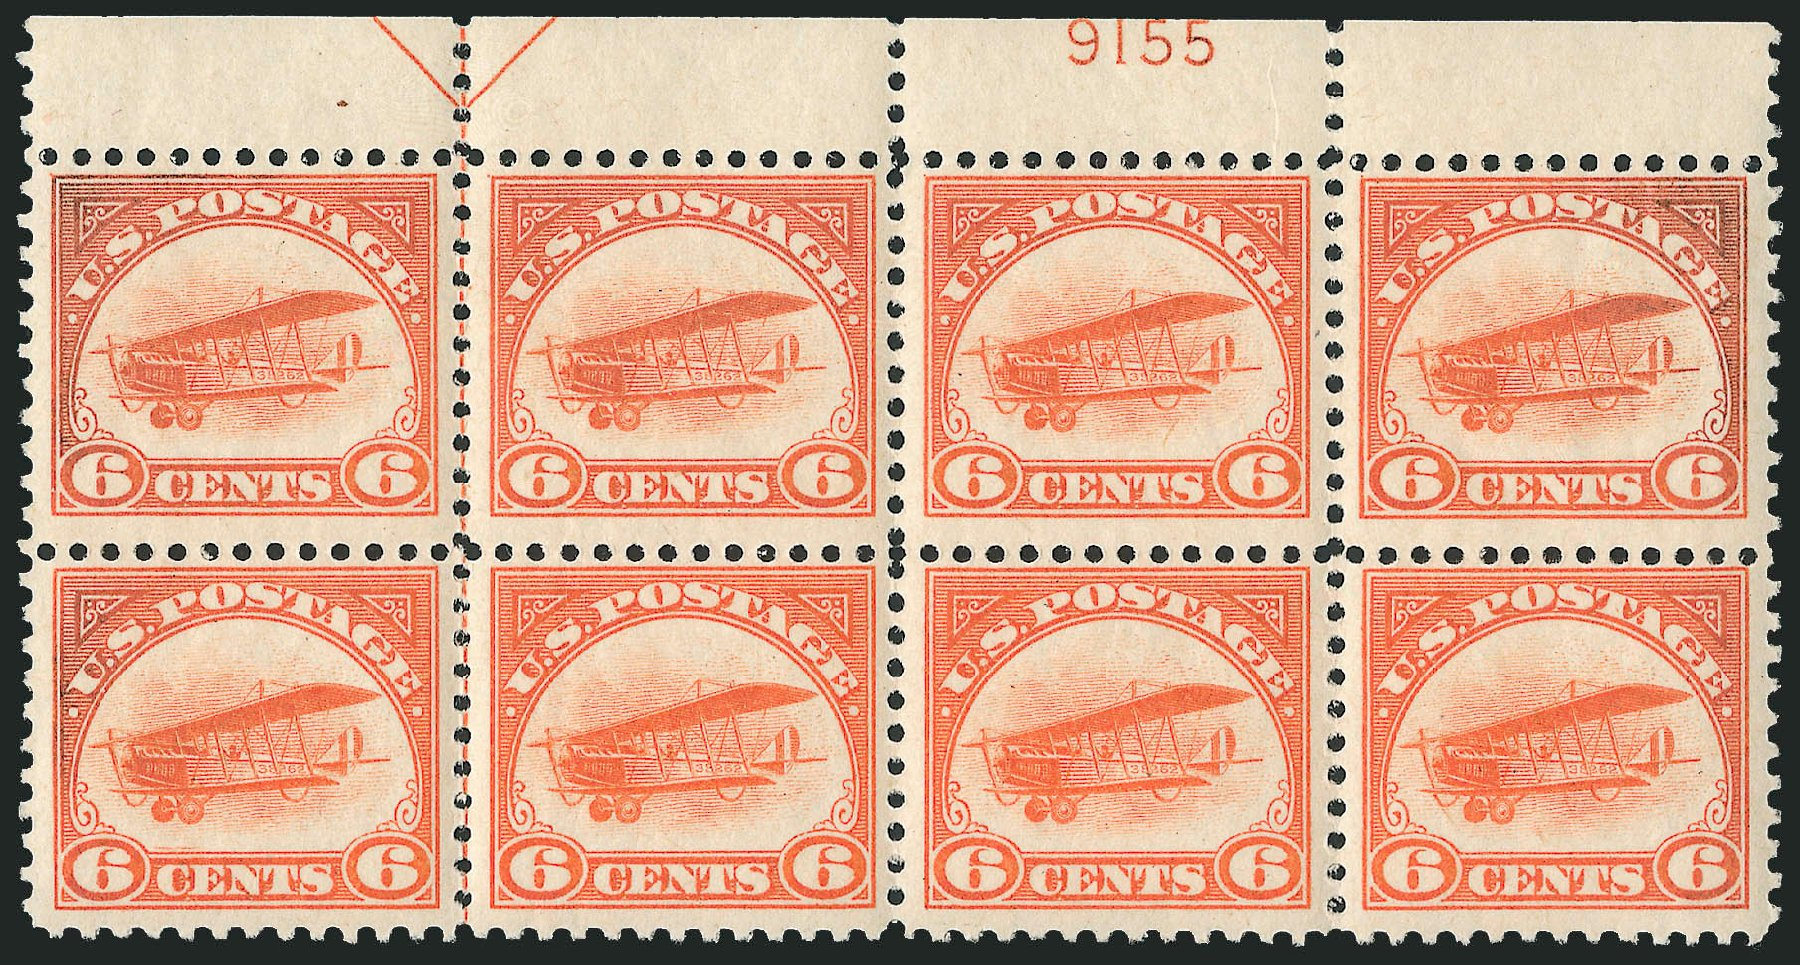 US Stamps Price Scott # C1 - 6c 1918 Air Curtiss Jenny. Robert Siegel Auction Galleries, Apr 2009, Sale 971, Lot 1862